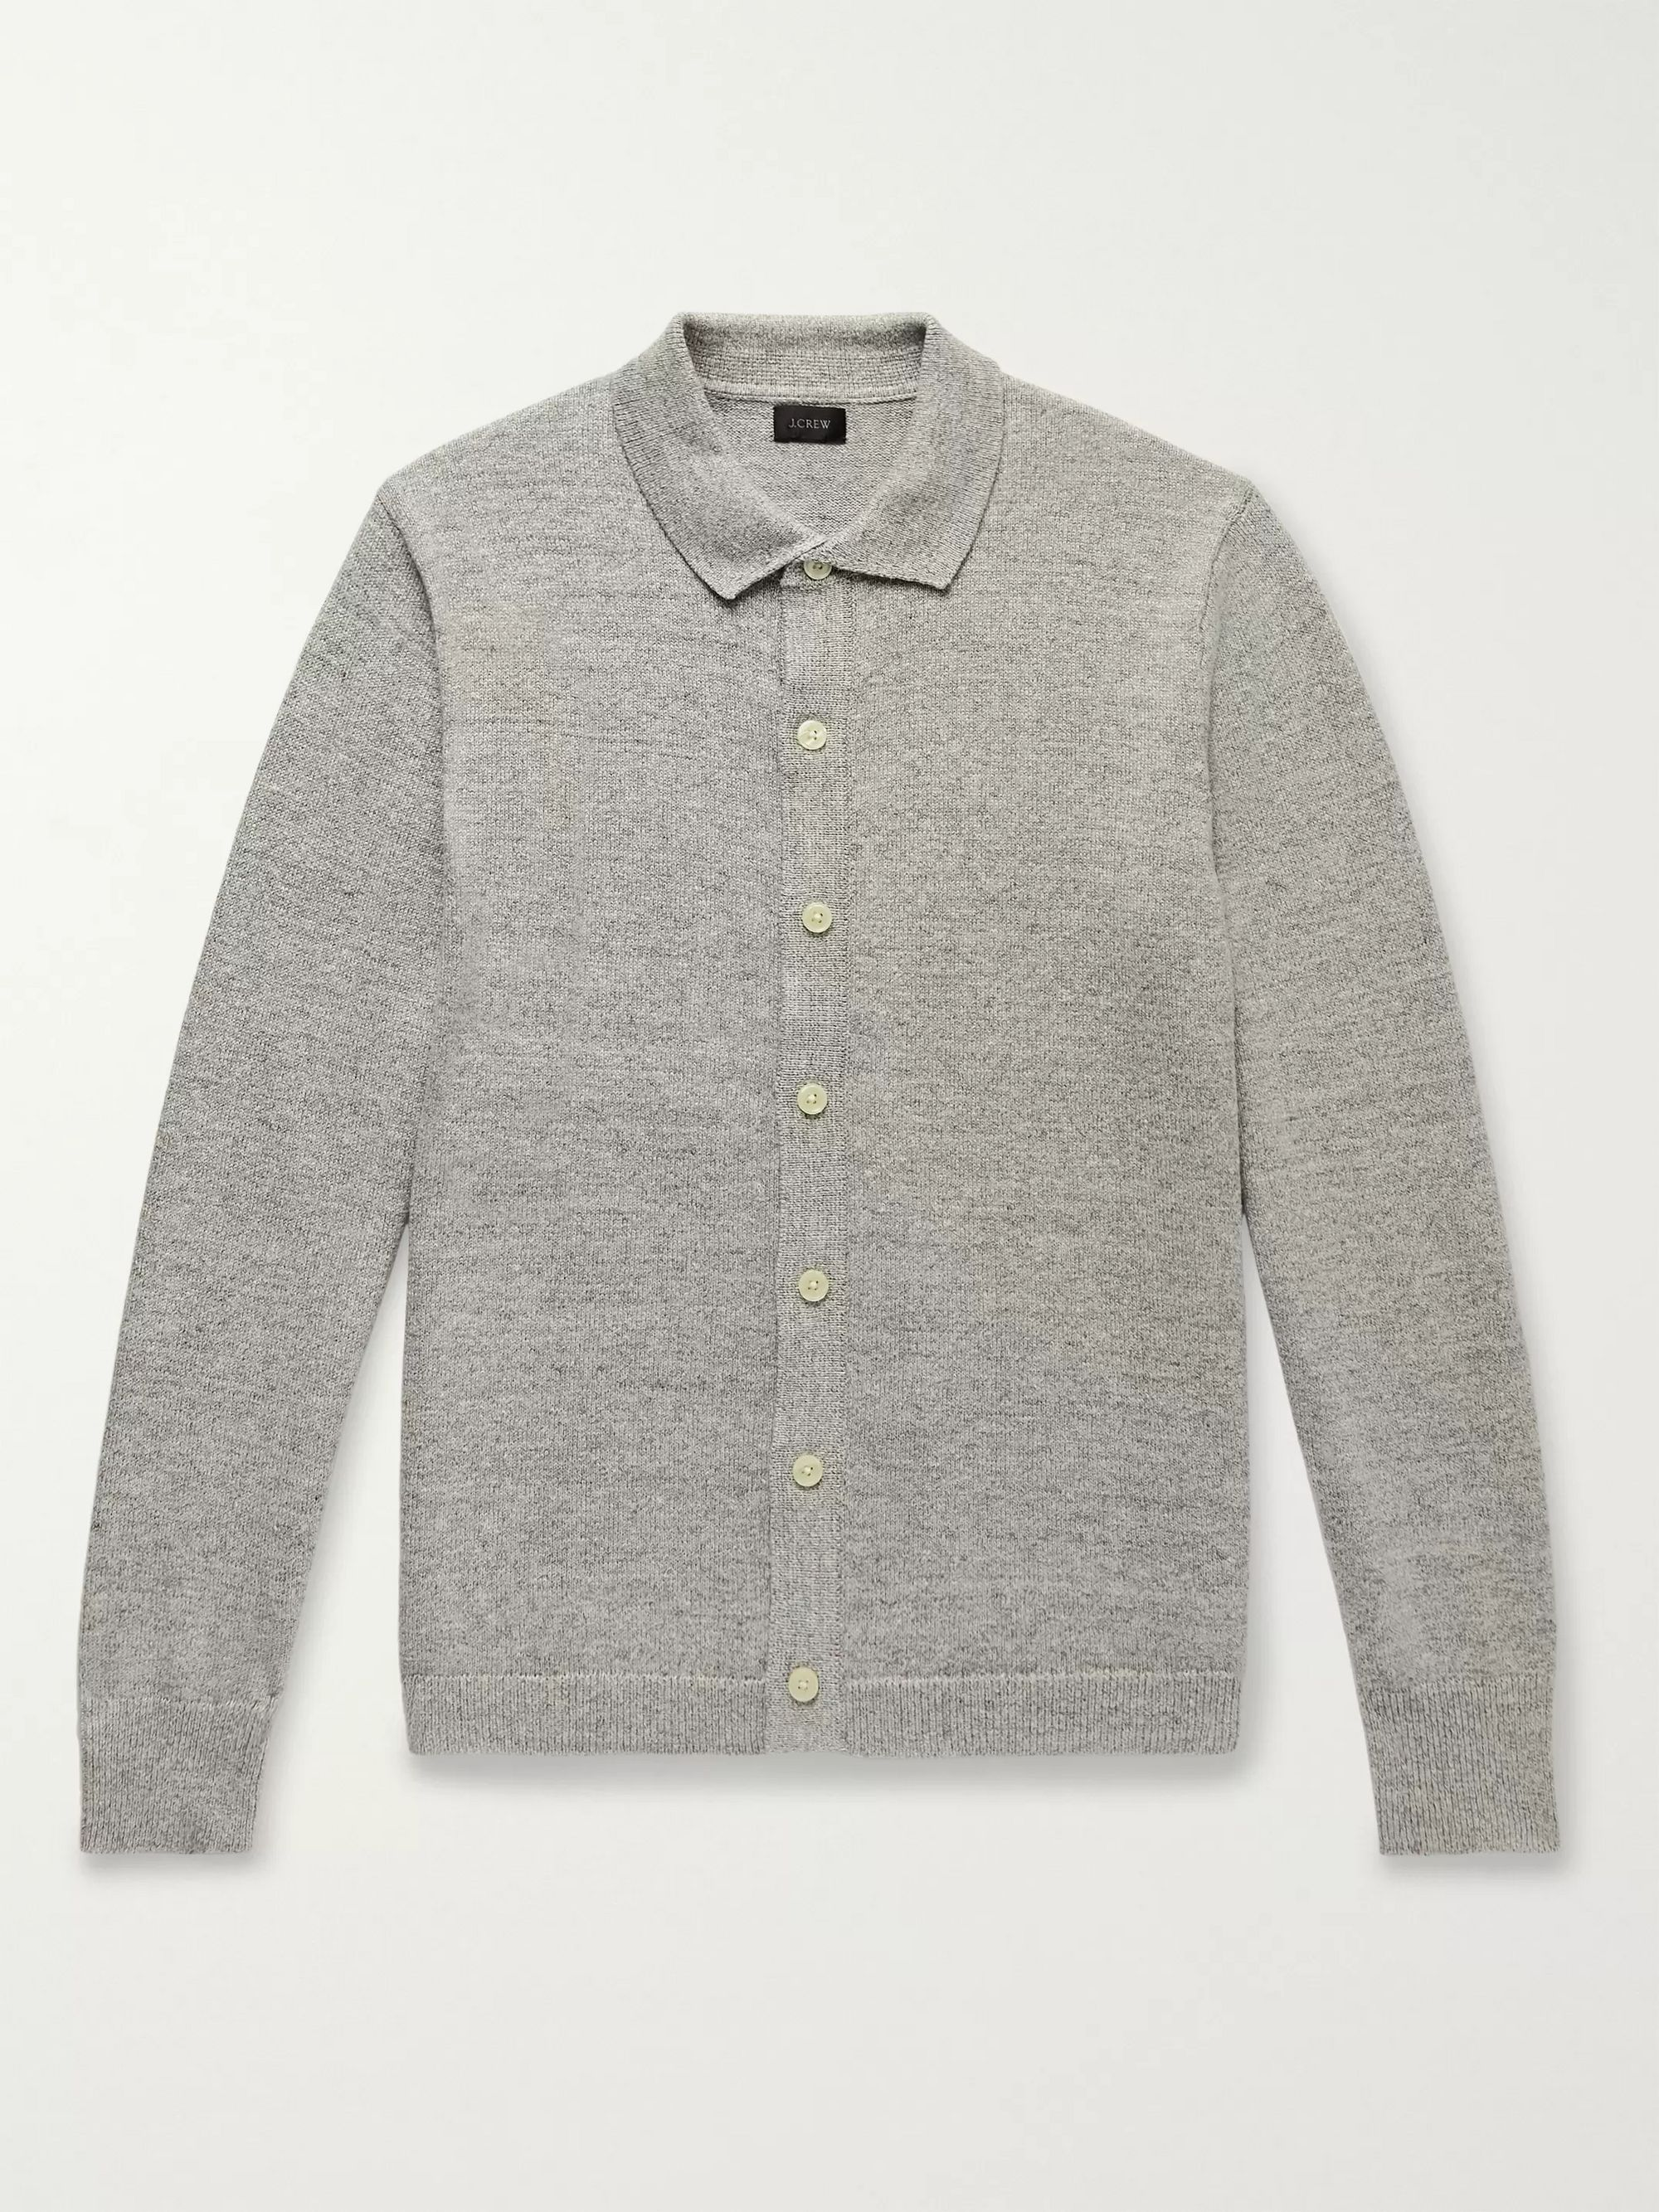 J.Crew Mélange Cotton and Wool-Blend Cardigan